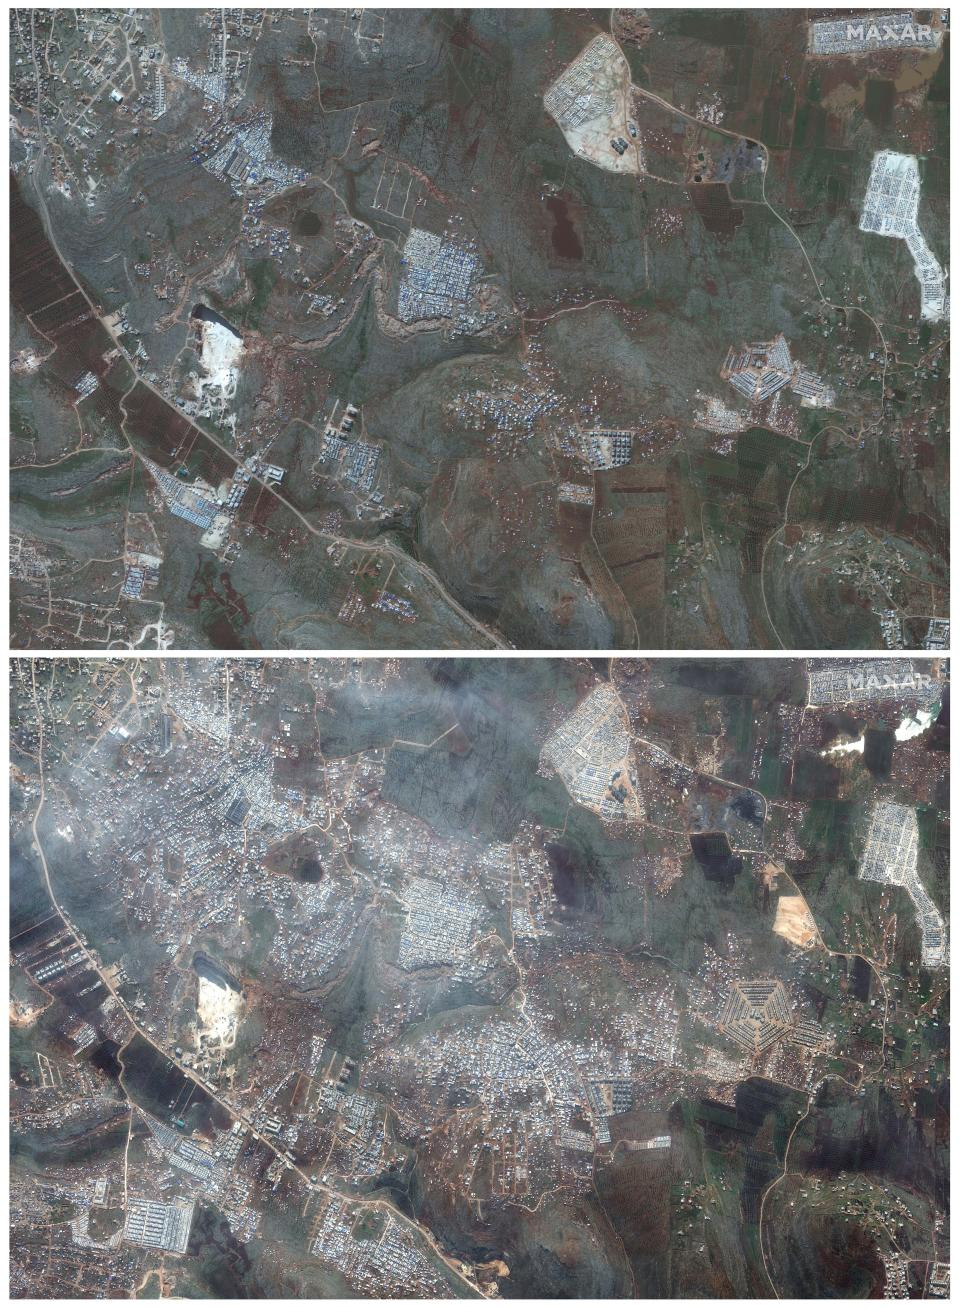 This combination of satellite images provided by Maxar Technologies shows an area near Kafaldin in northern Syria's Idlib province near the Turkish border on Feb. 5, 2019, top, and the same area with a large number of refugee tents for internally displaced people on Feb. 16, 2020, bottom. The difference between the two images illustrates the rapid expansion of refugees as hundreds of thousands of civilians in the area are scrambling to escape a widening, multi-front offensive by Syrian President Bashar Assad's forces. (Satellite image ©2020 Maxar Technologies via AP)